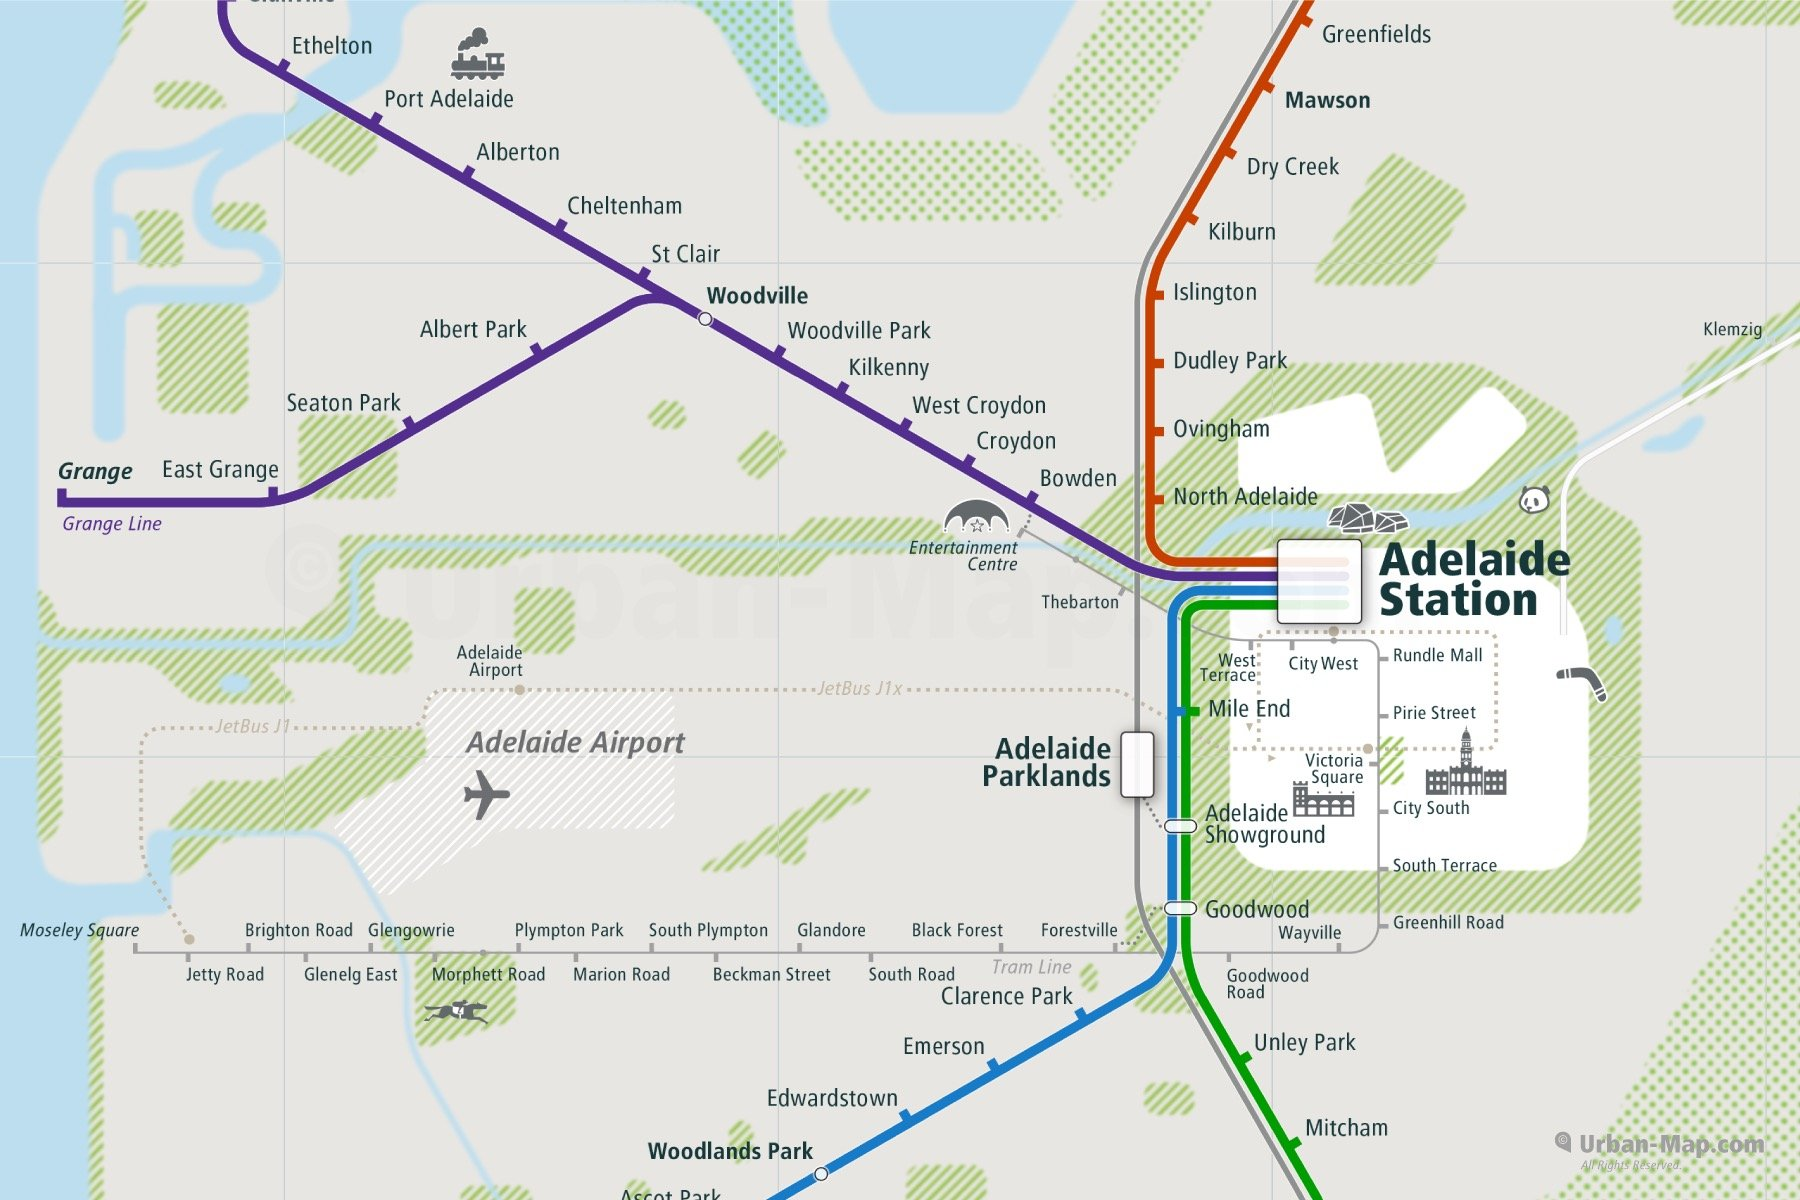 Adelaide City Rail Map shows the train and public transportation routes of Commuter Rail, Tram, Airport Link - Close-Up